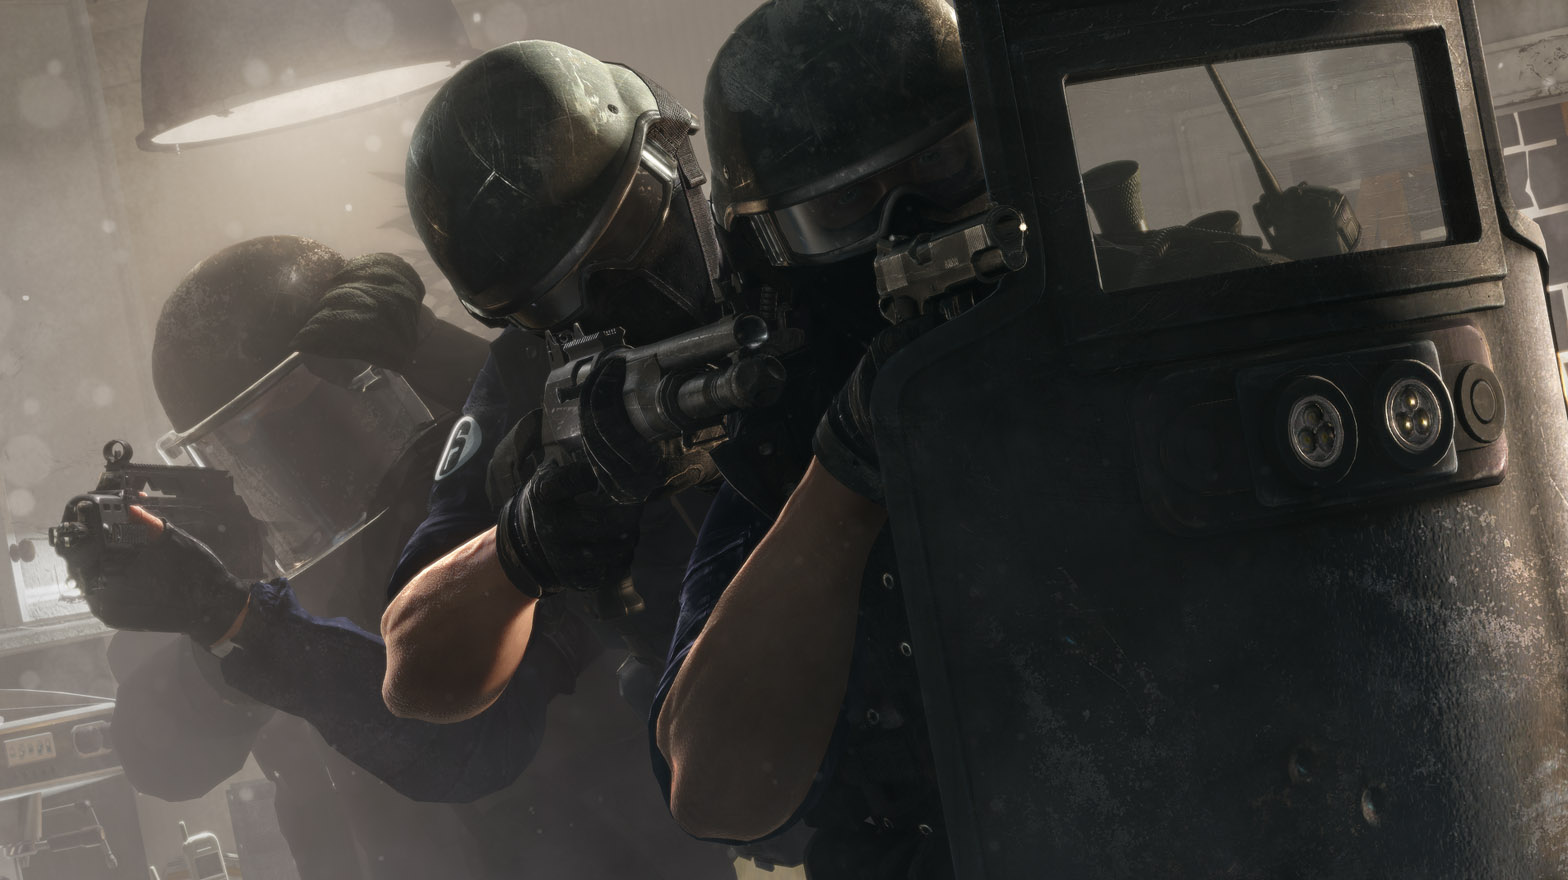 Two men in armor behind a riot shield from the game Rainbox Six Seige